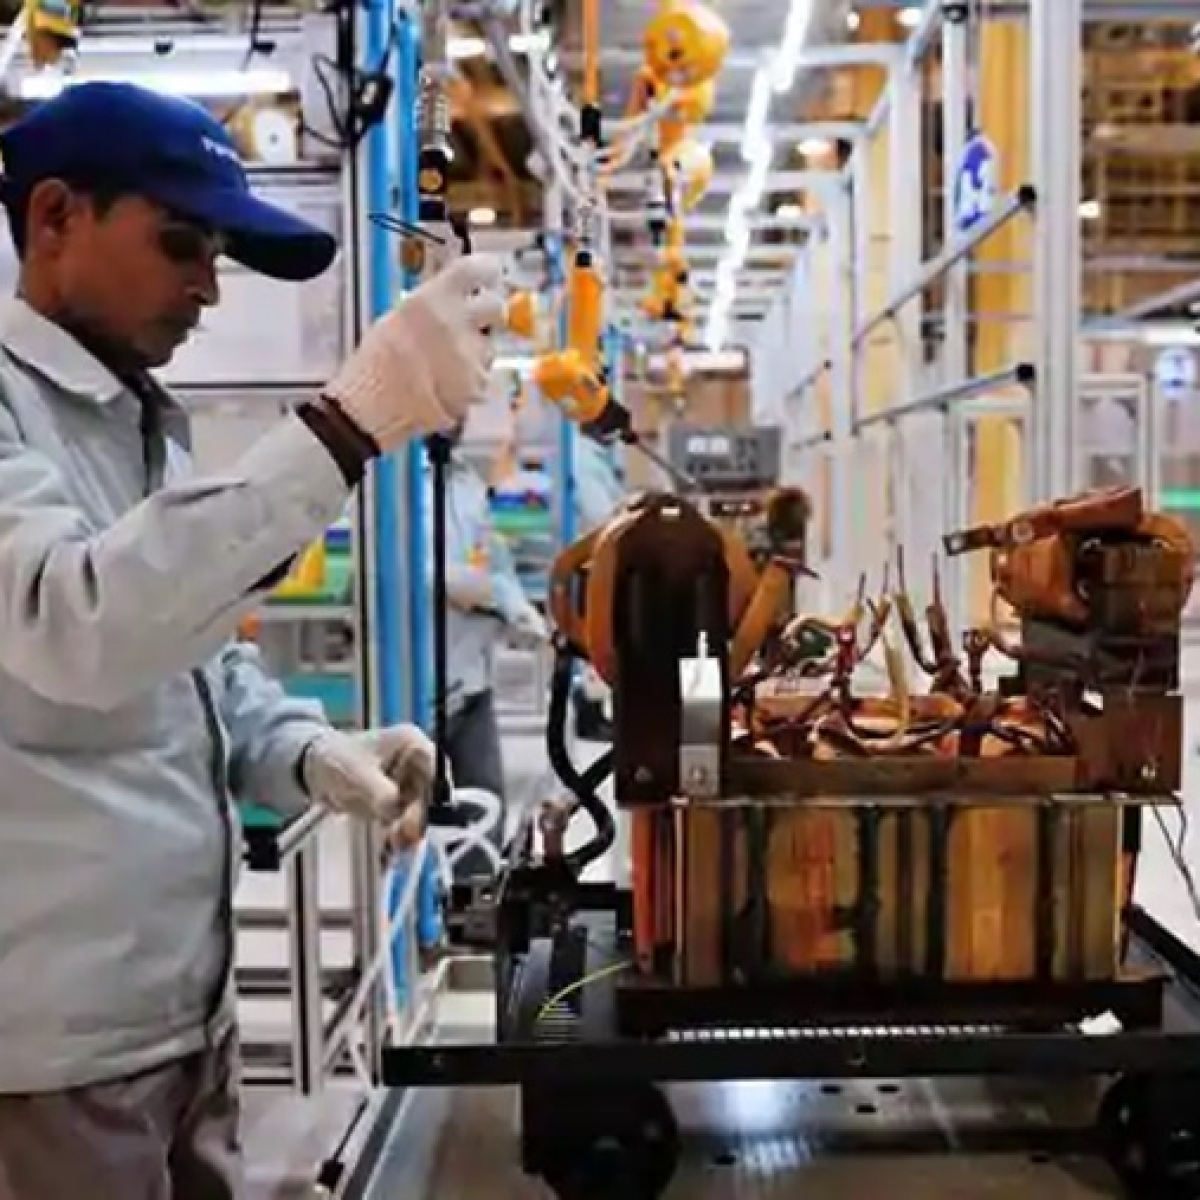 Home Ministry issues detailed guidelines for restarting manufacturing industries after lockdown